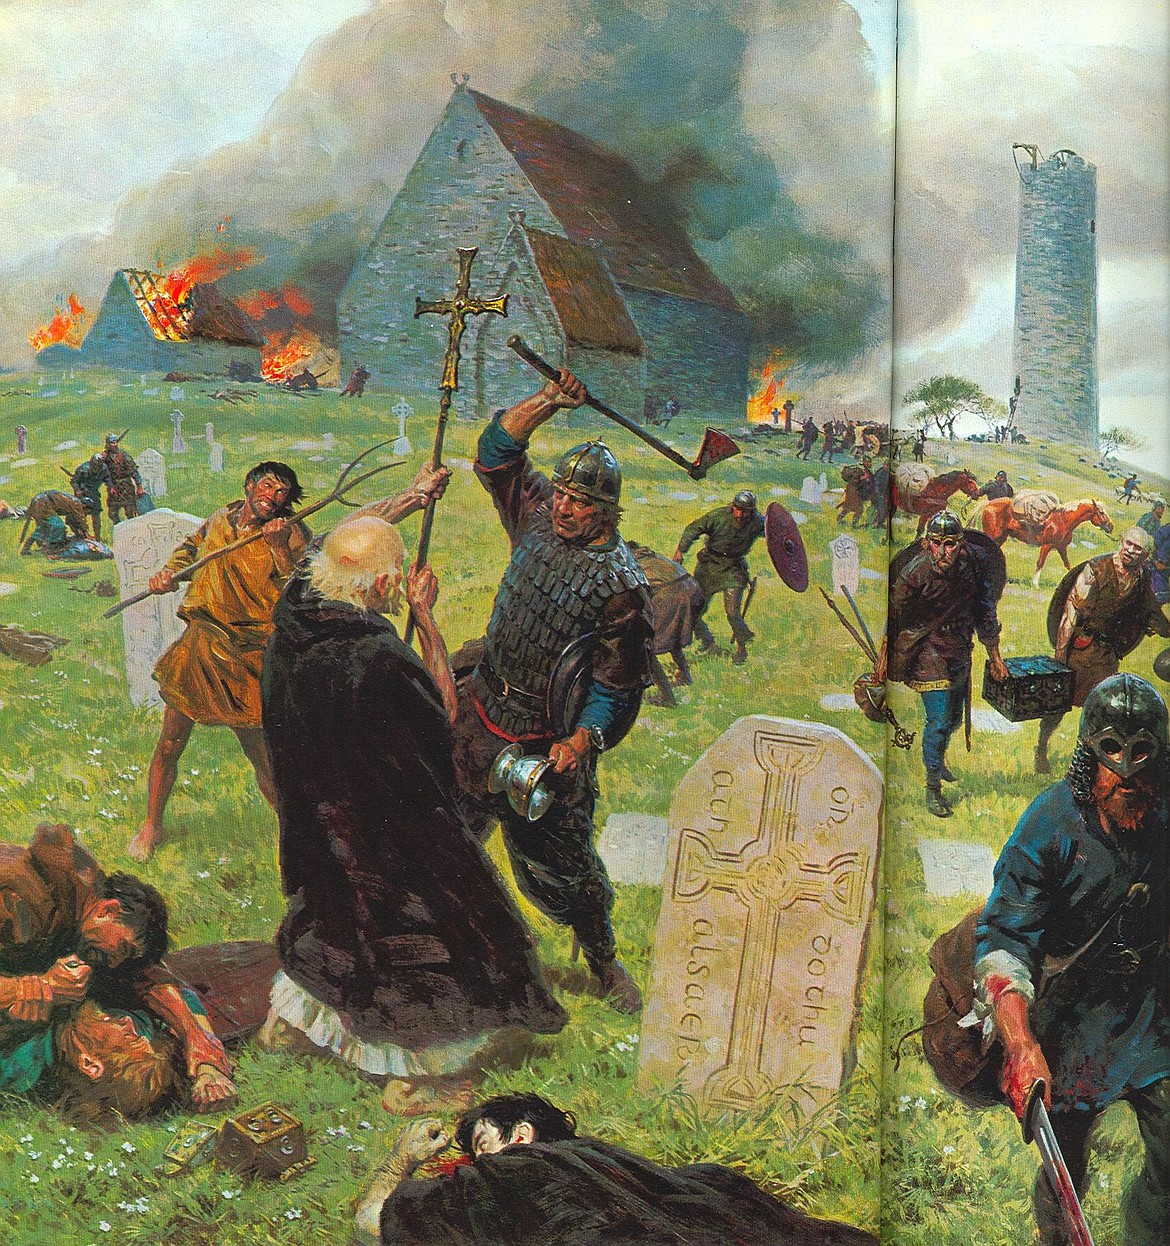 The Viking Age is said to have begun in AD 793, with the Viking plundering of the Holy Island of Lindisfarne off the coast of Northumberland, England, just south of the Scottish border, with this painting depicting an attack of the monastery at Clonmacnoise, Ireland, raided often by Vikings, Normans and Irish.